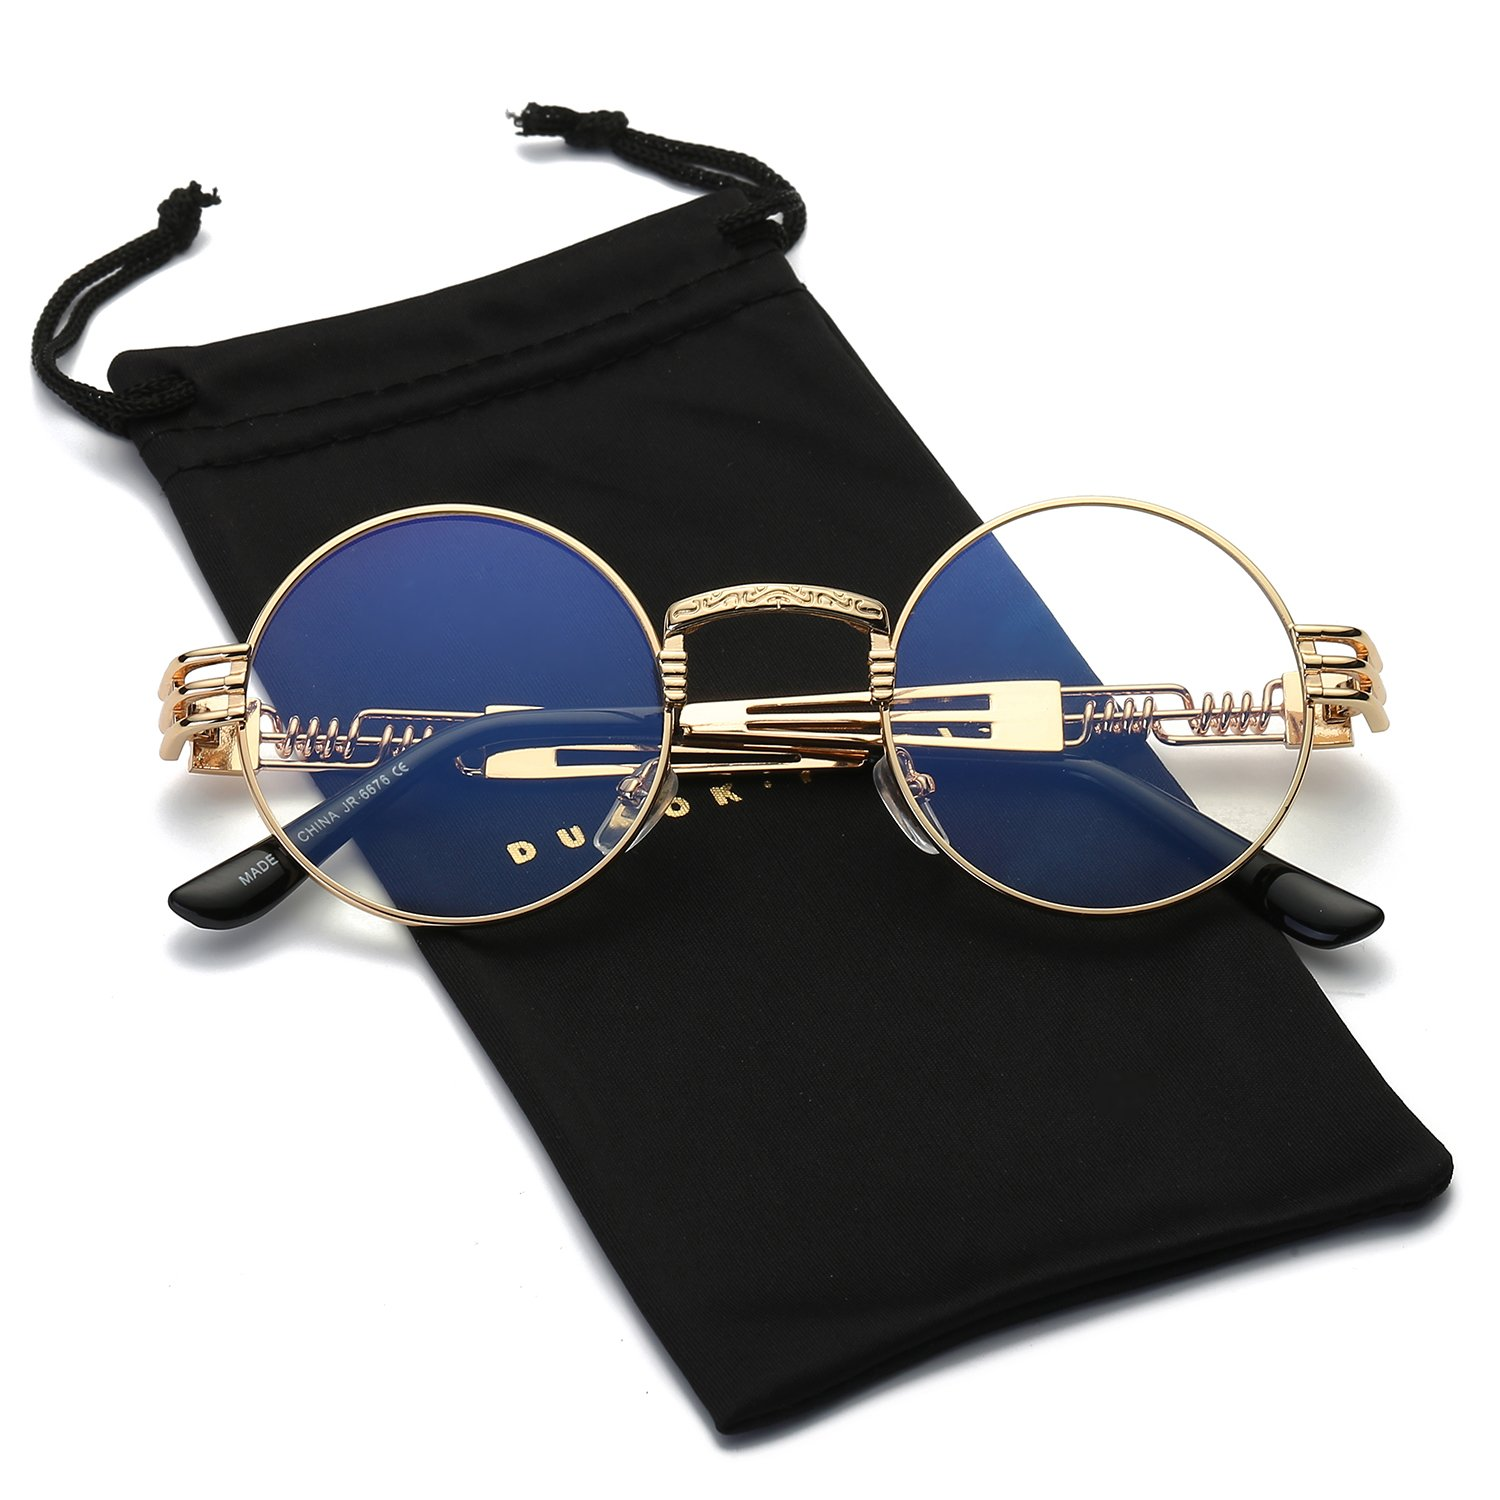 7b56db821105 Online Cheap wholesale Dumok Round Metal Steampunk Vintage Circle  Sunglasses DSR007 Suppliers